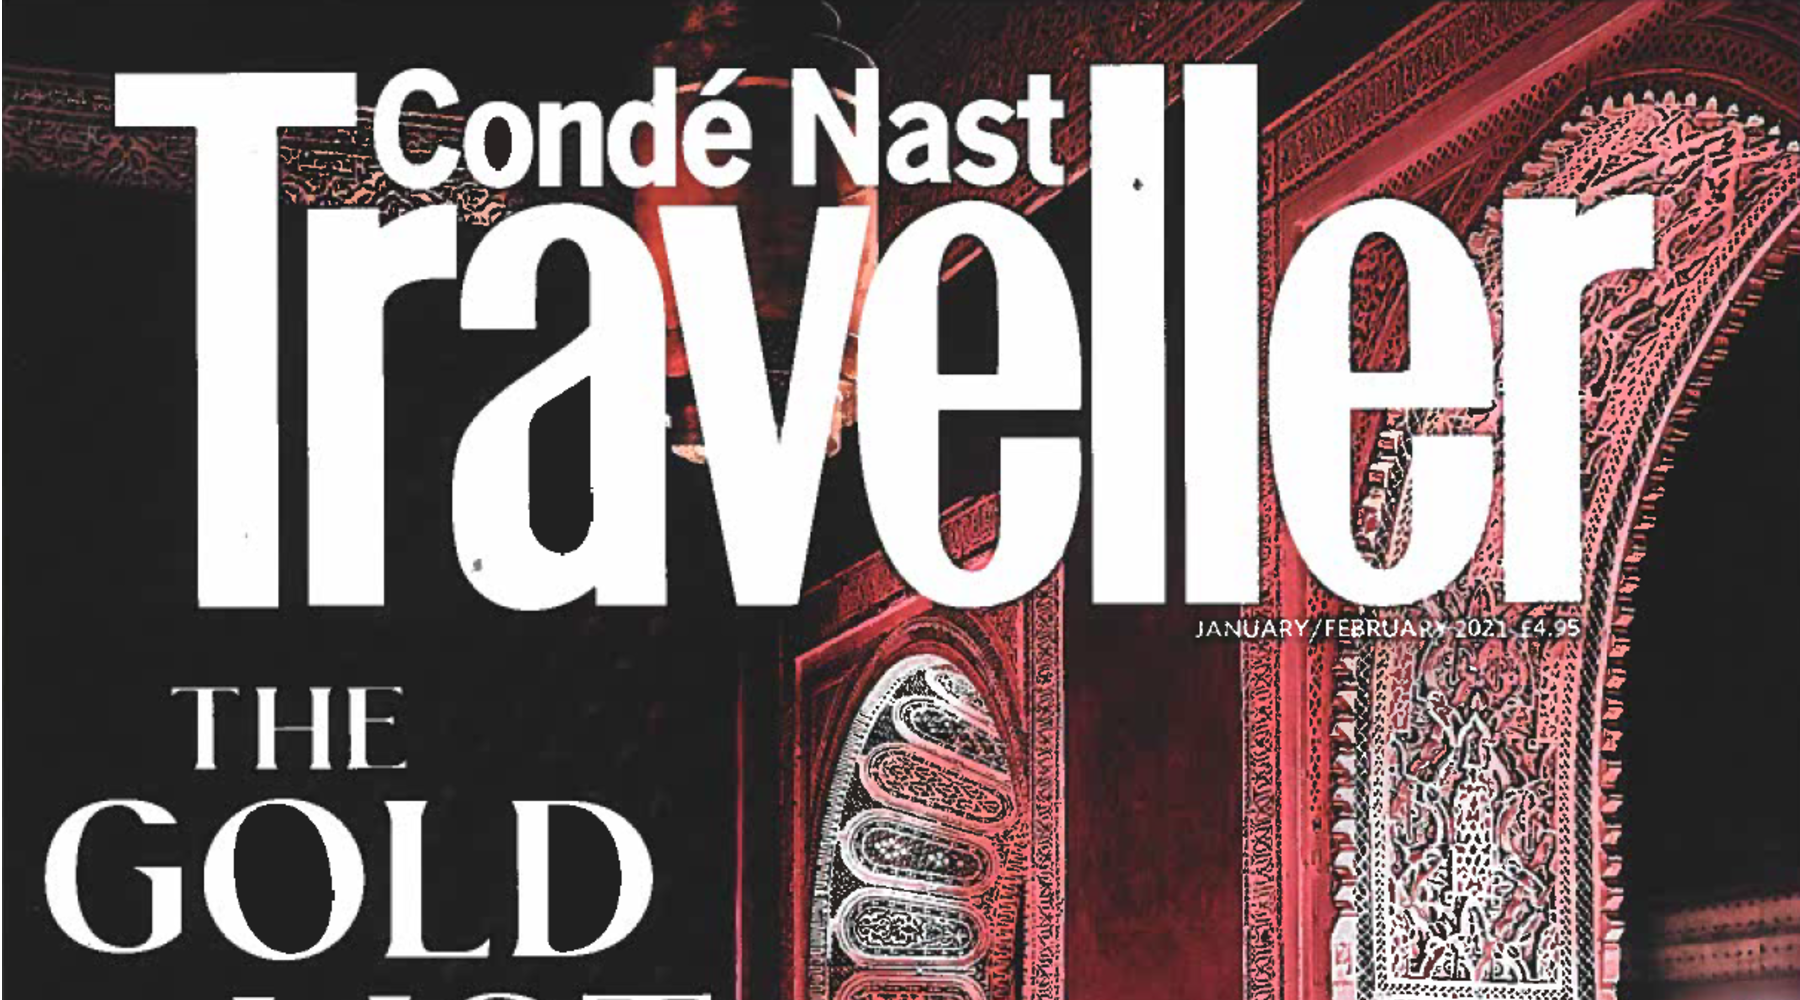 1st Jan | The Luxury Gift Guide - January/February 2021 Issue (Condé Nast Traveller)